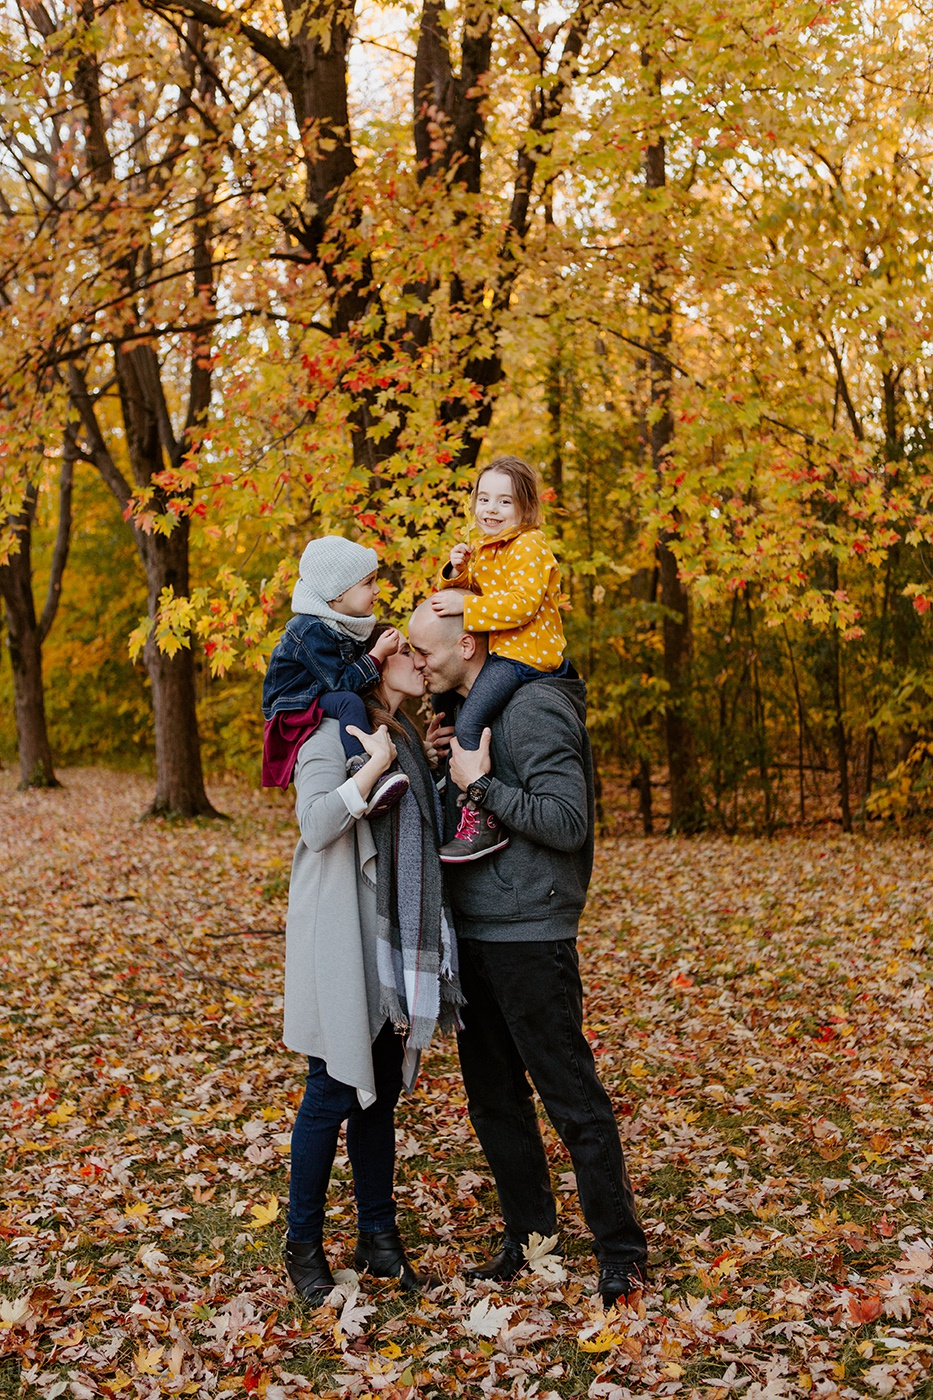 Séance familiale en automne à Montréal. Photoshoot d'automne Montréal. Photographe de famille à Montréal. Montreal family photographer. Montreal fall photoshoot. Lisa-Marie Savard Photographie